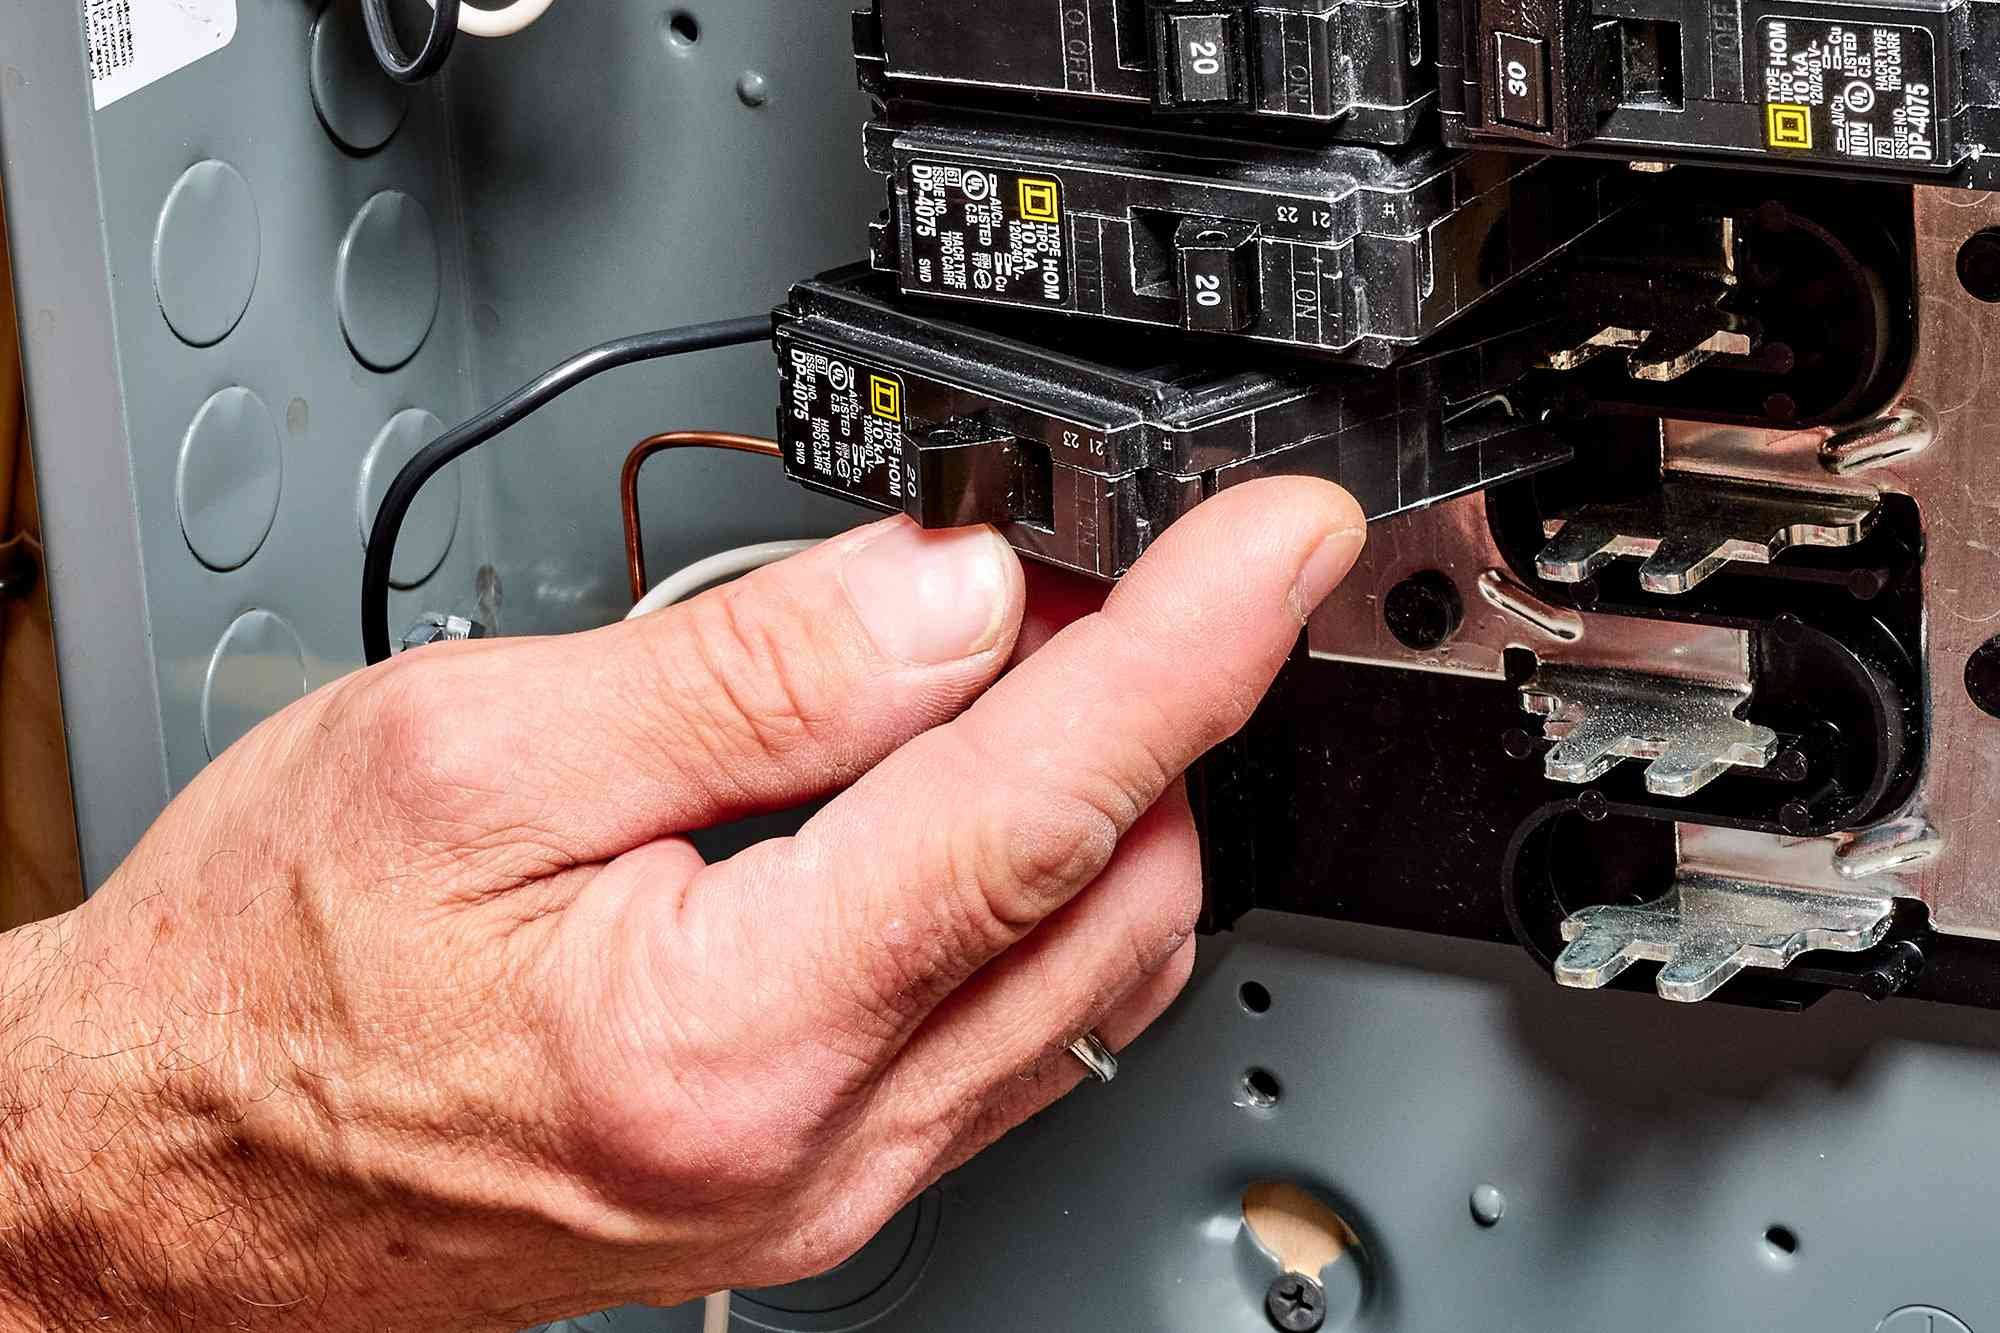 Circuit breaker being replaced inside service panel